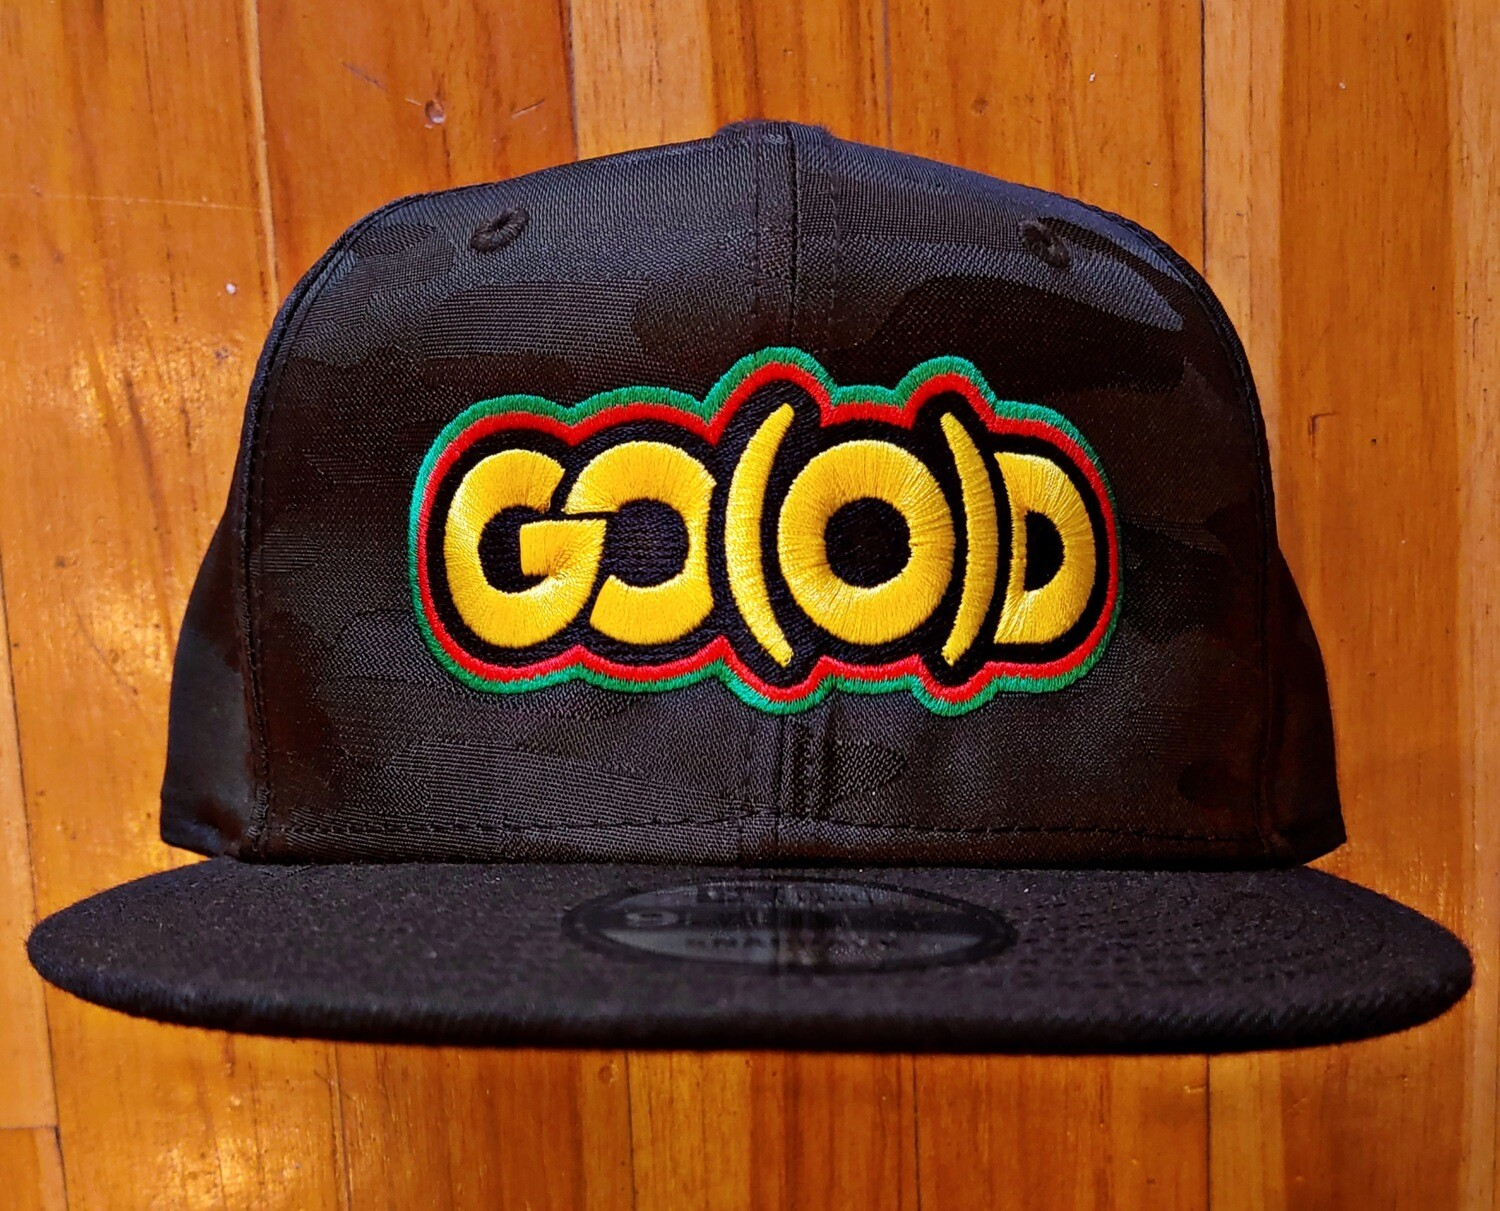 GO(O)D HISTORY Snap Back-black camo print/yellow/red/green